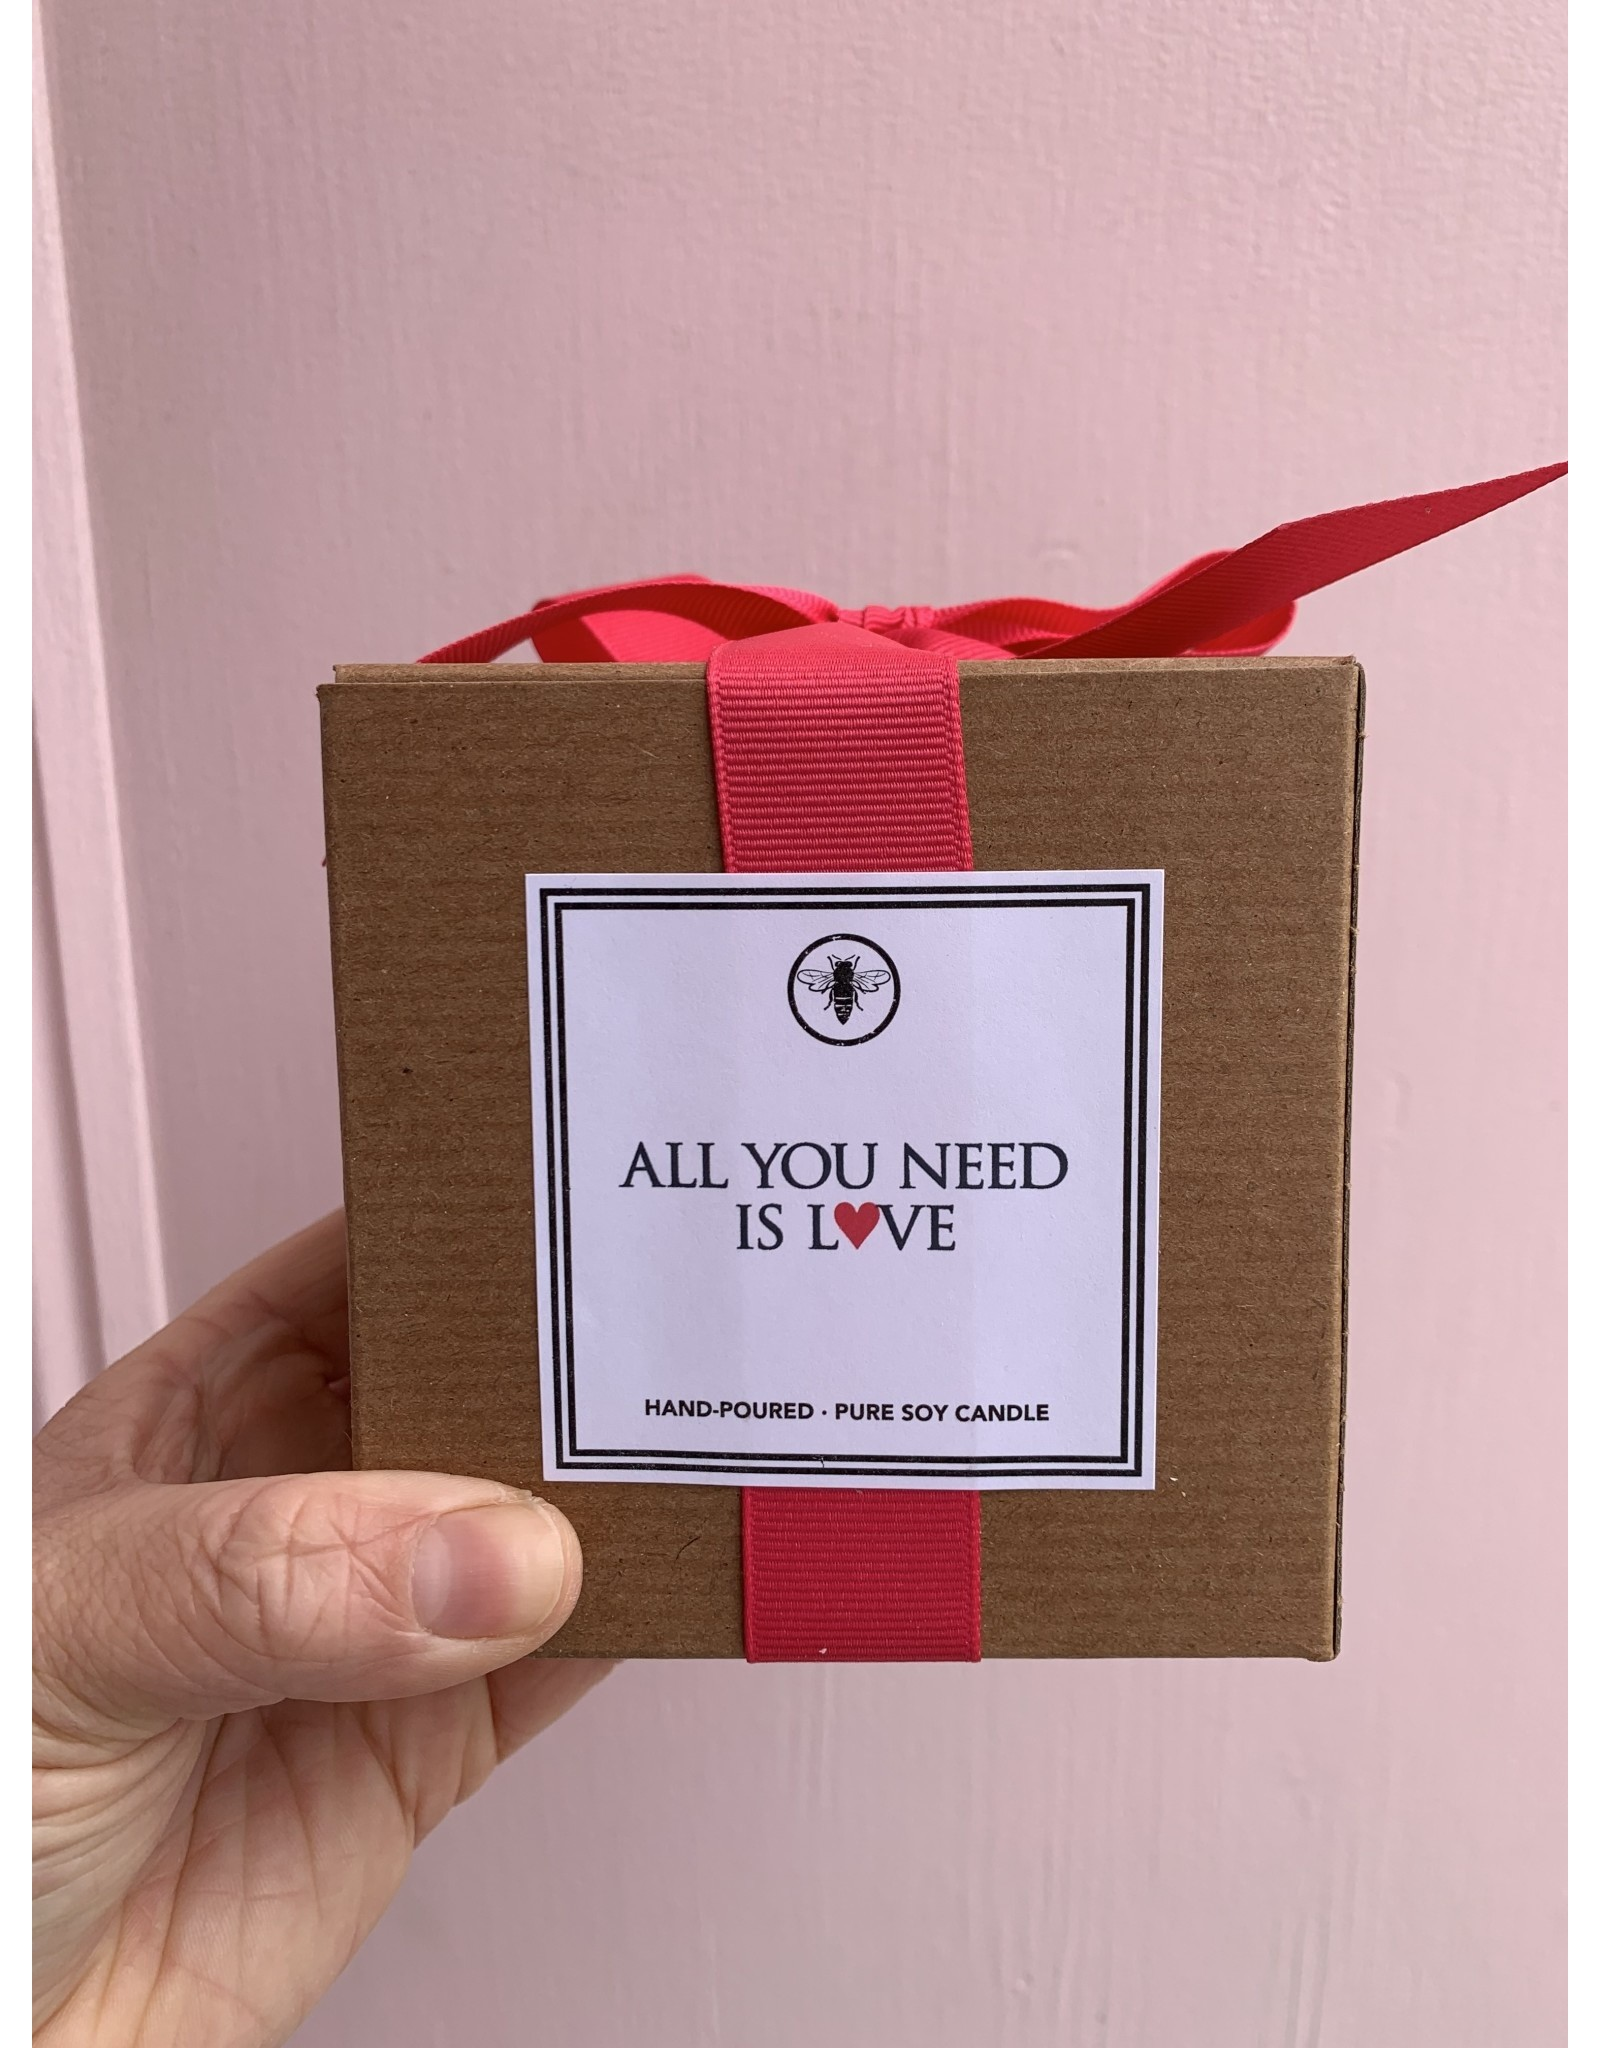 All You Need Is Love Candle